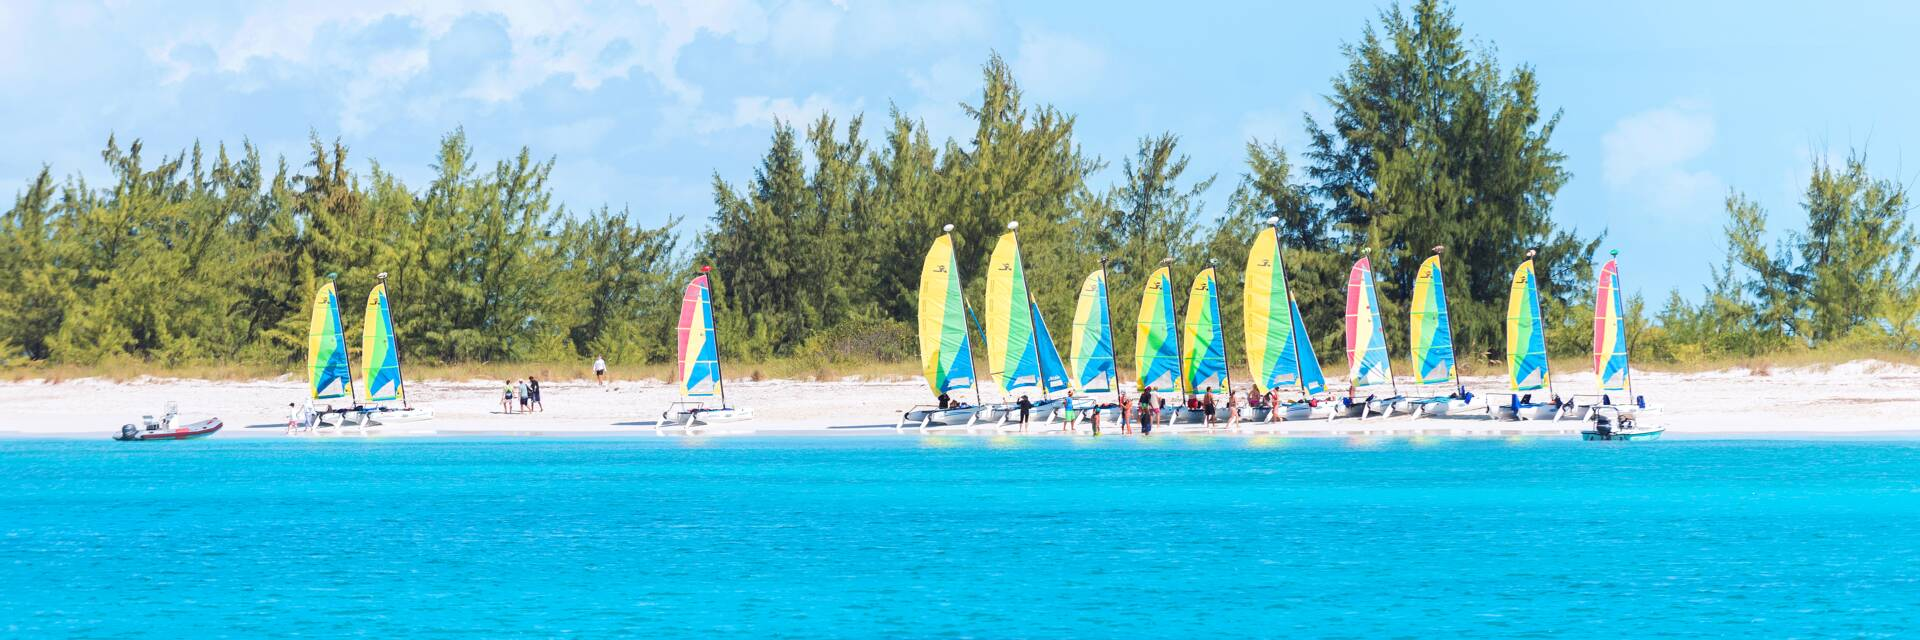 Turks And Caicos Resorts >> Providenciales Hobie Cat Sailing | Visit Turks and Caicos Islands